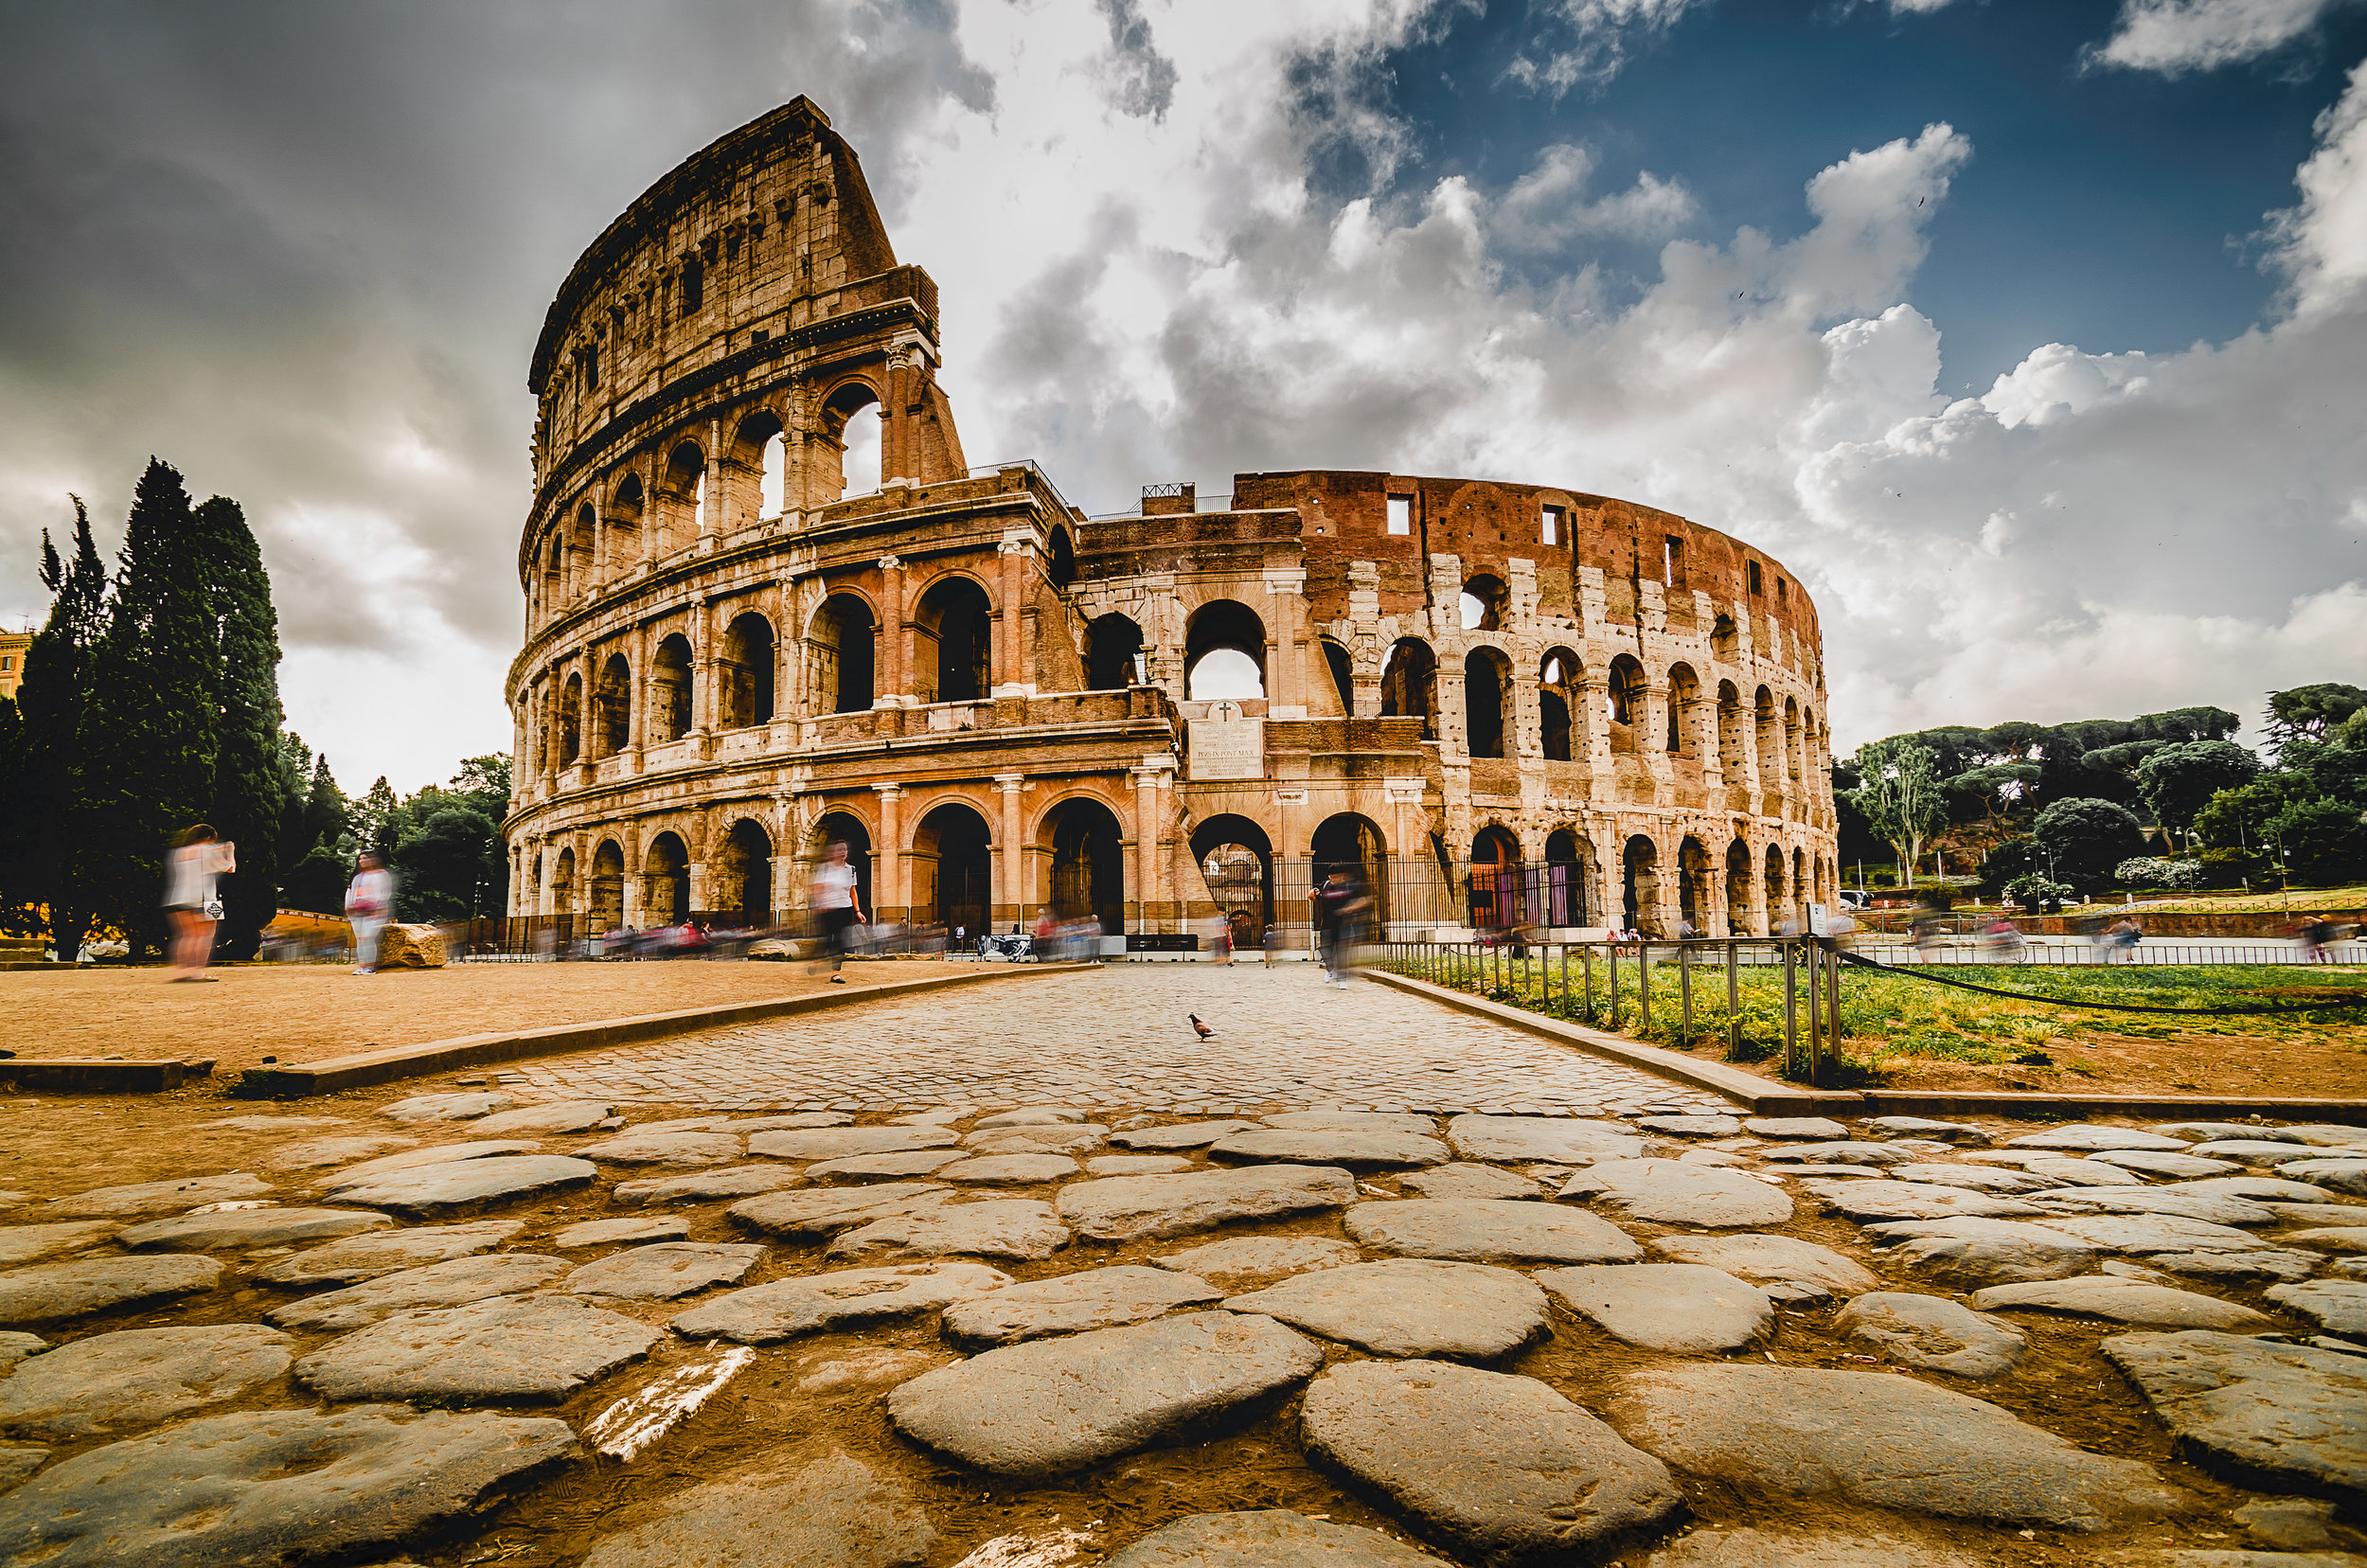 The Roman Colosseum